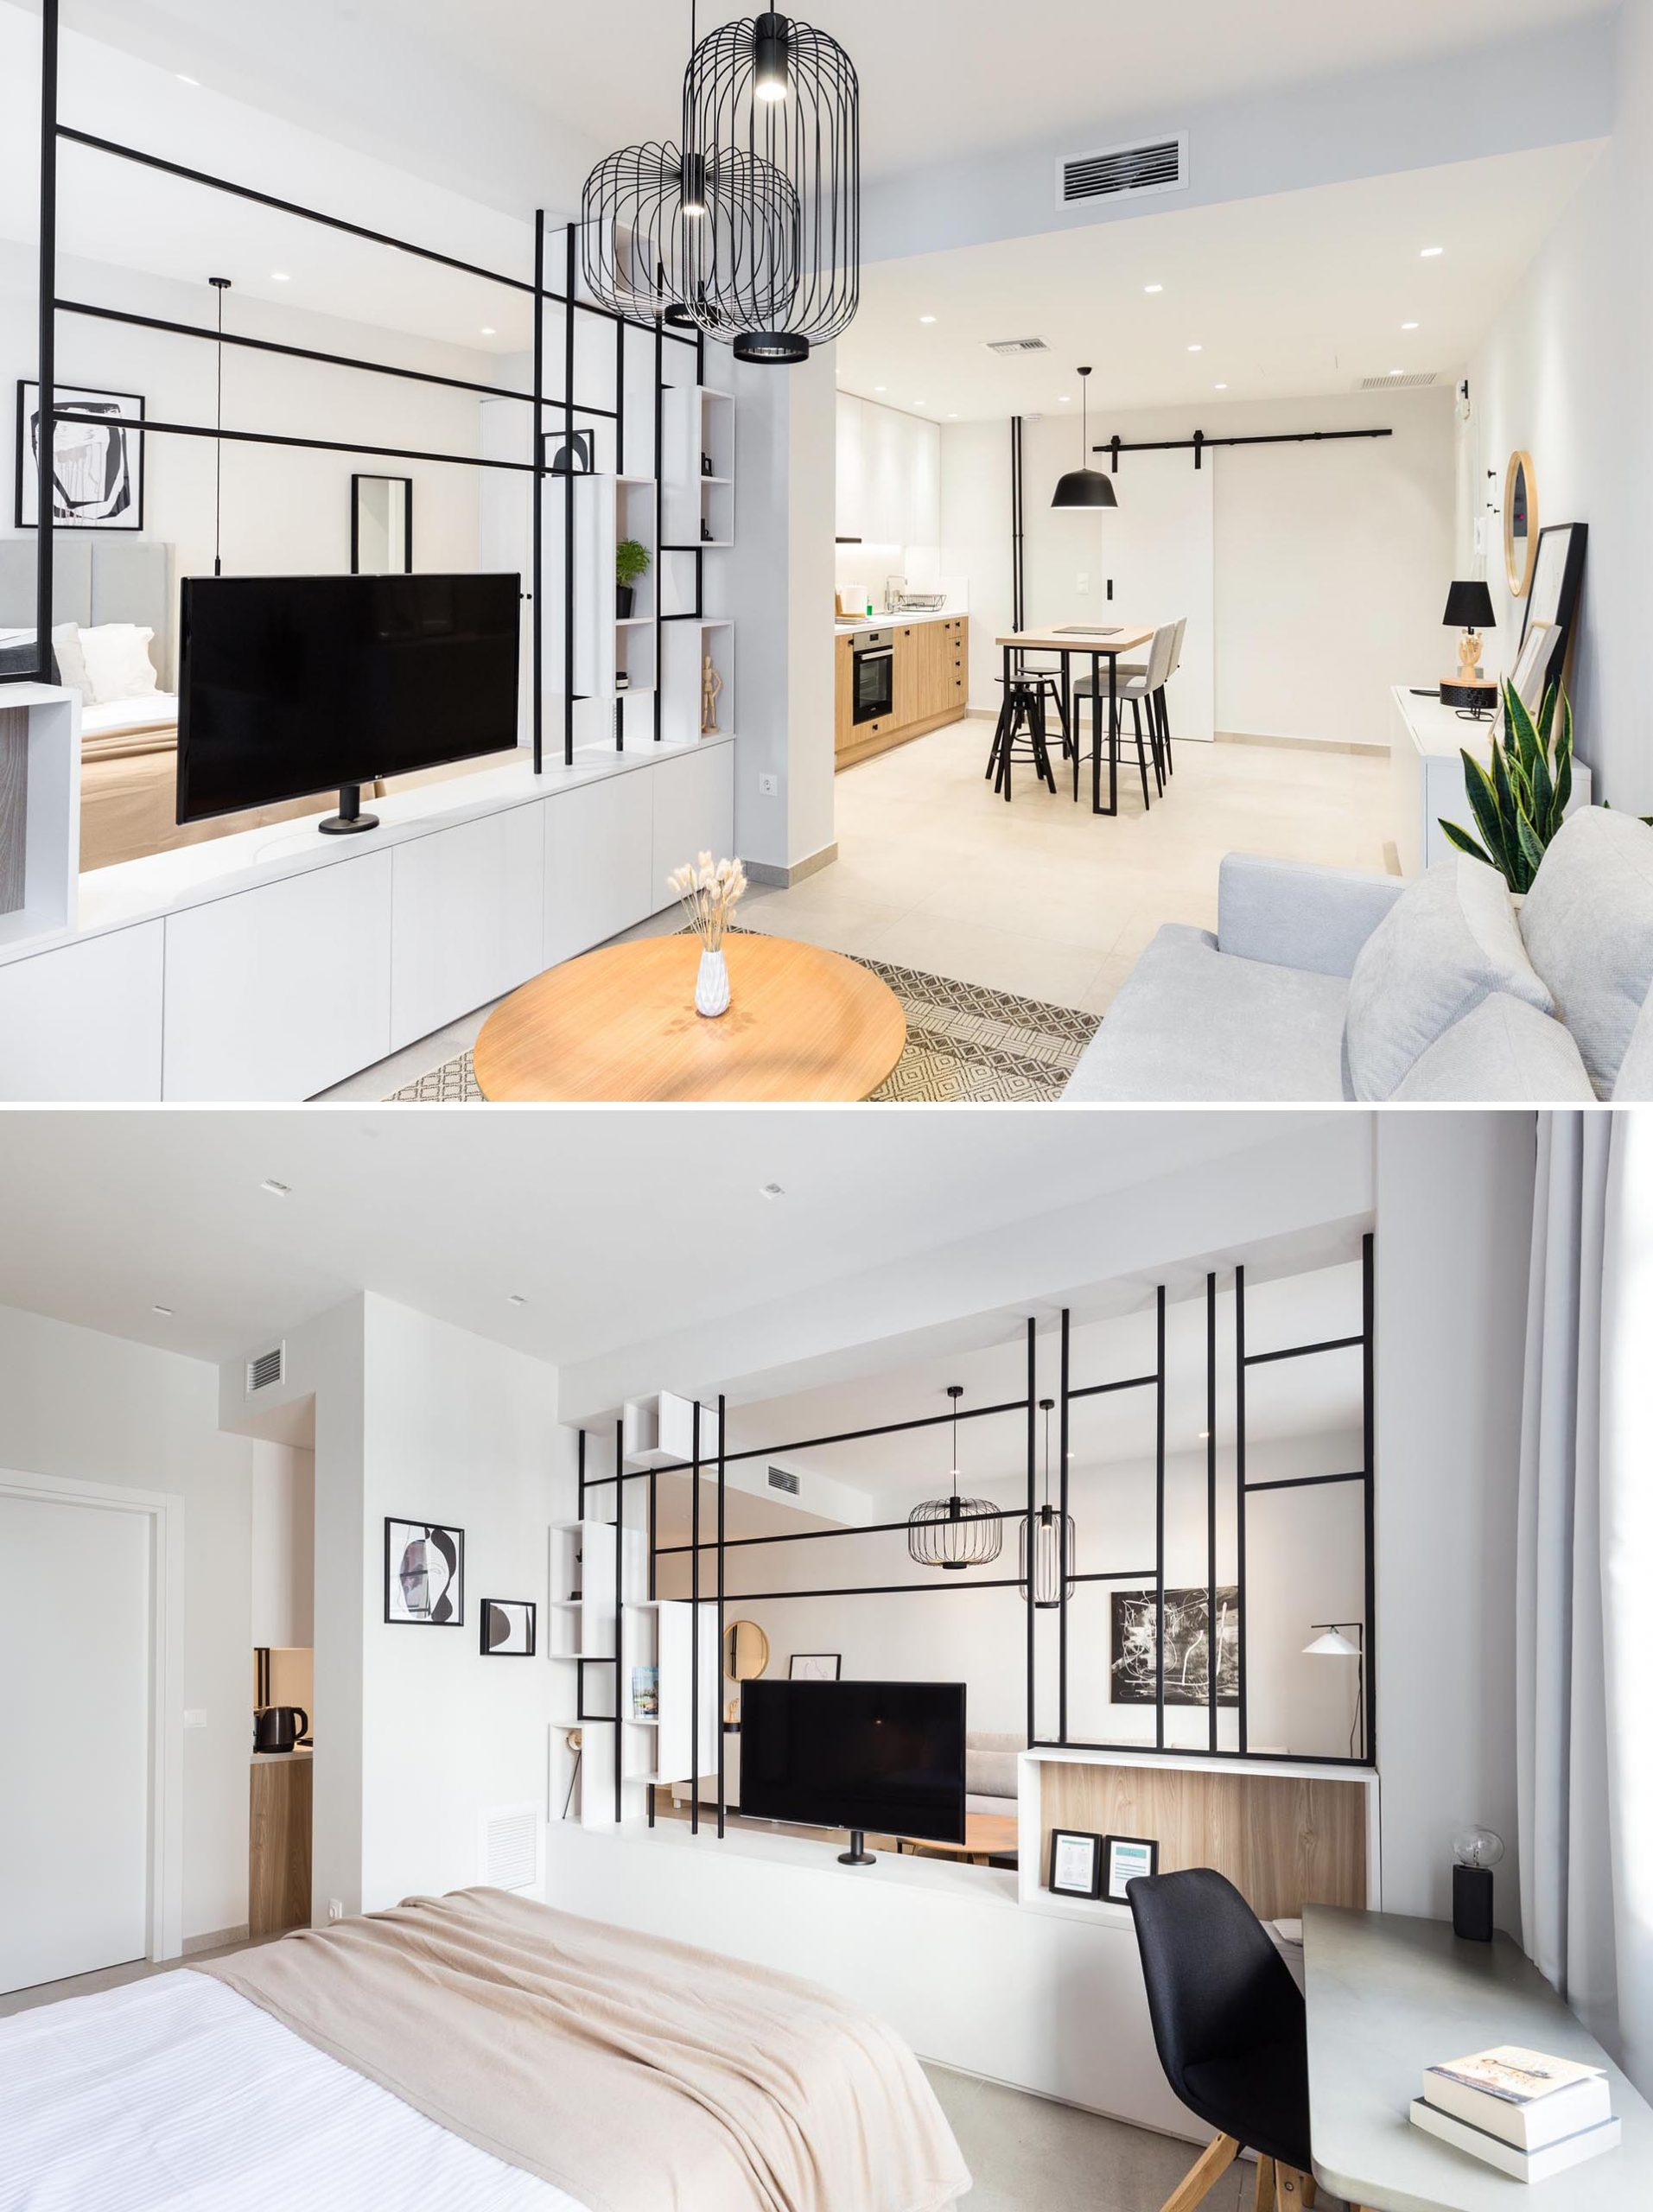 A small apartment with a room divider between the living room and bedroom, that allows the TV to be rotated.